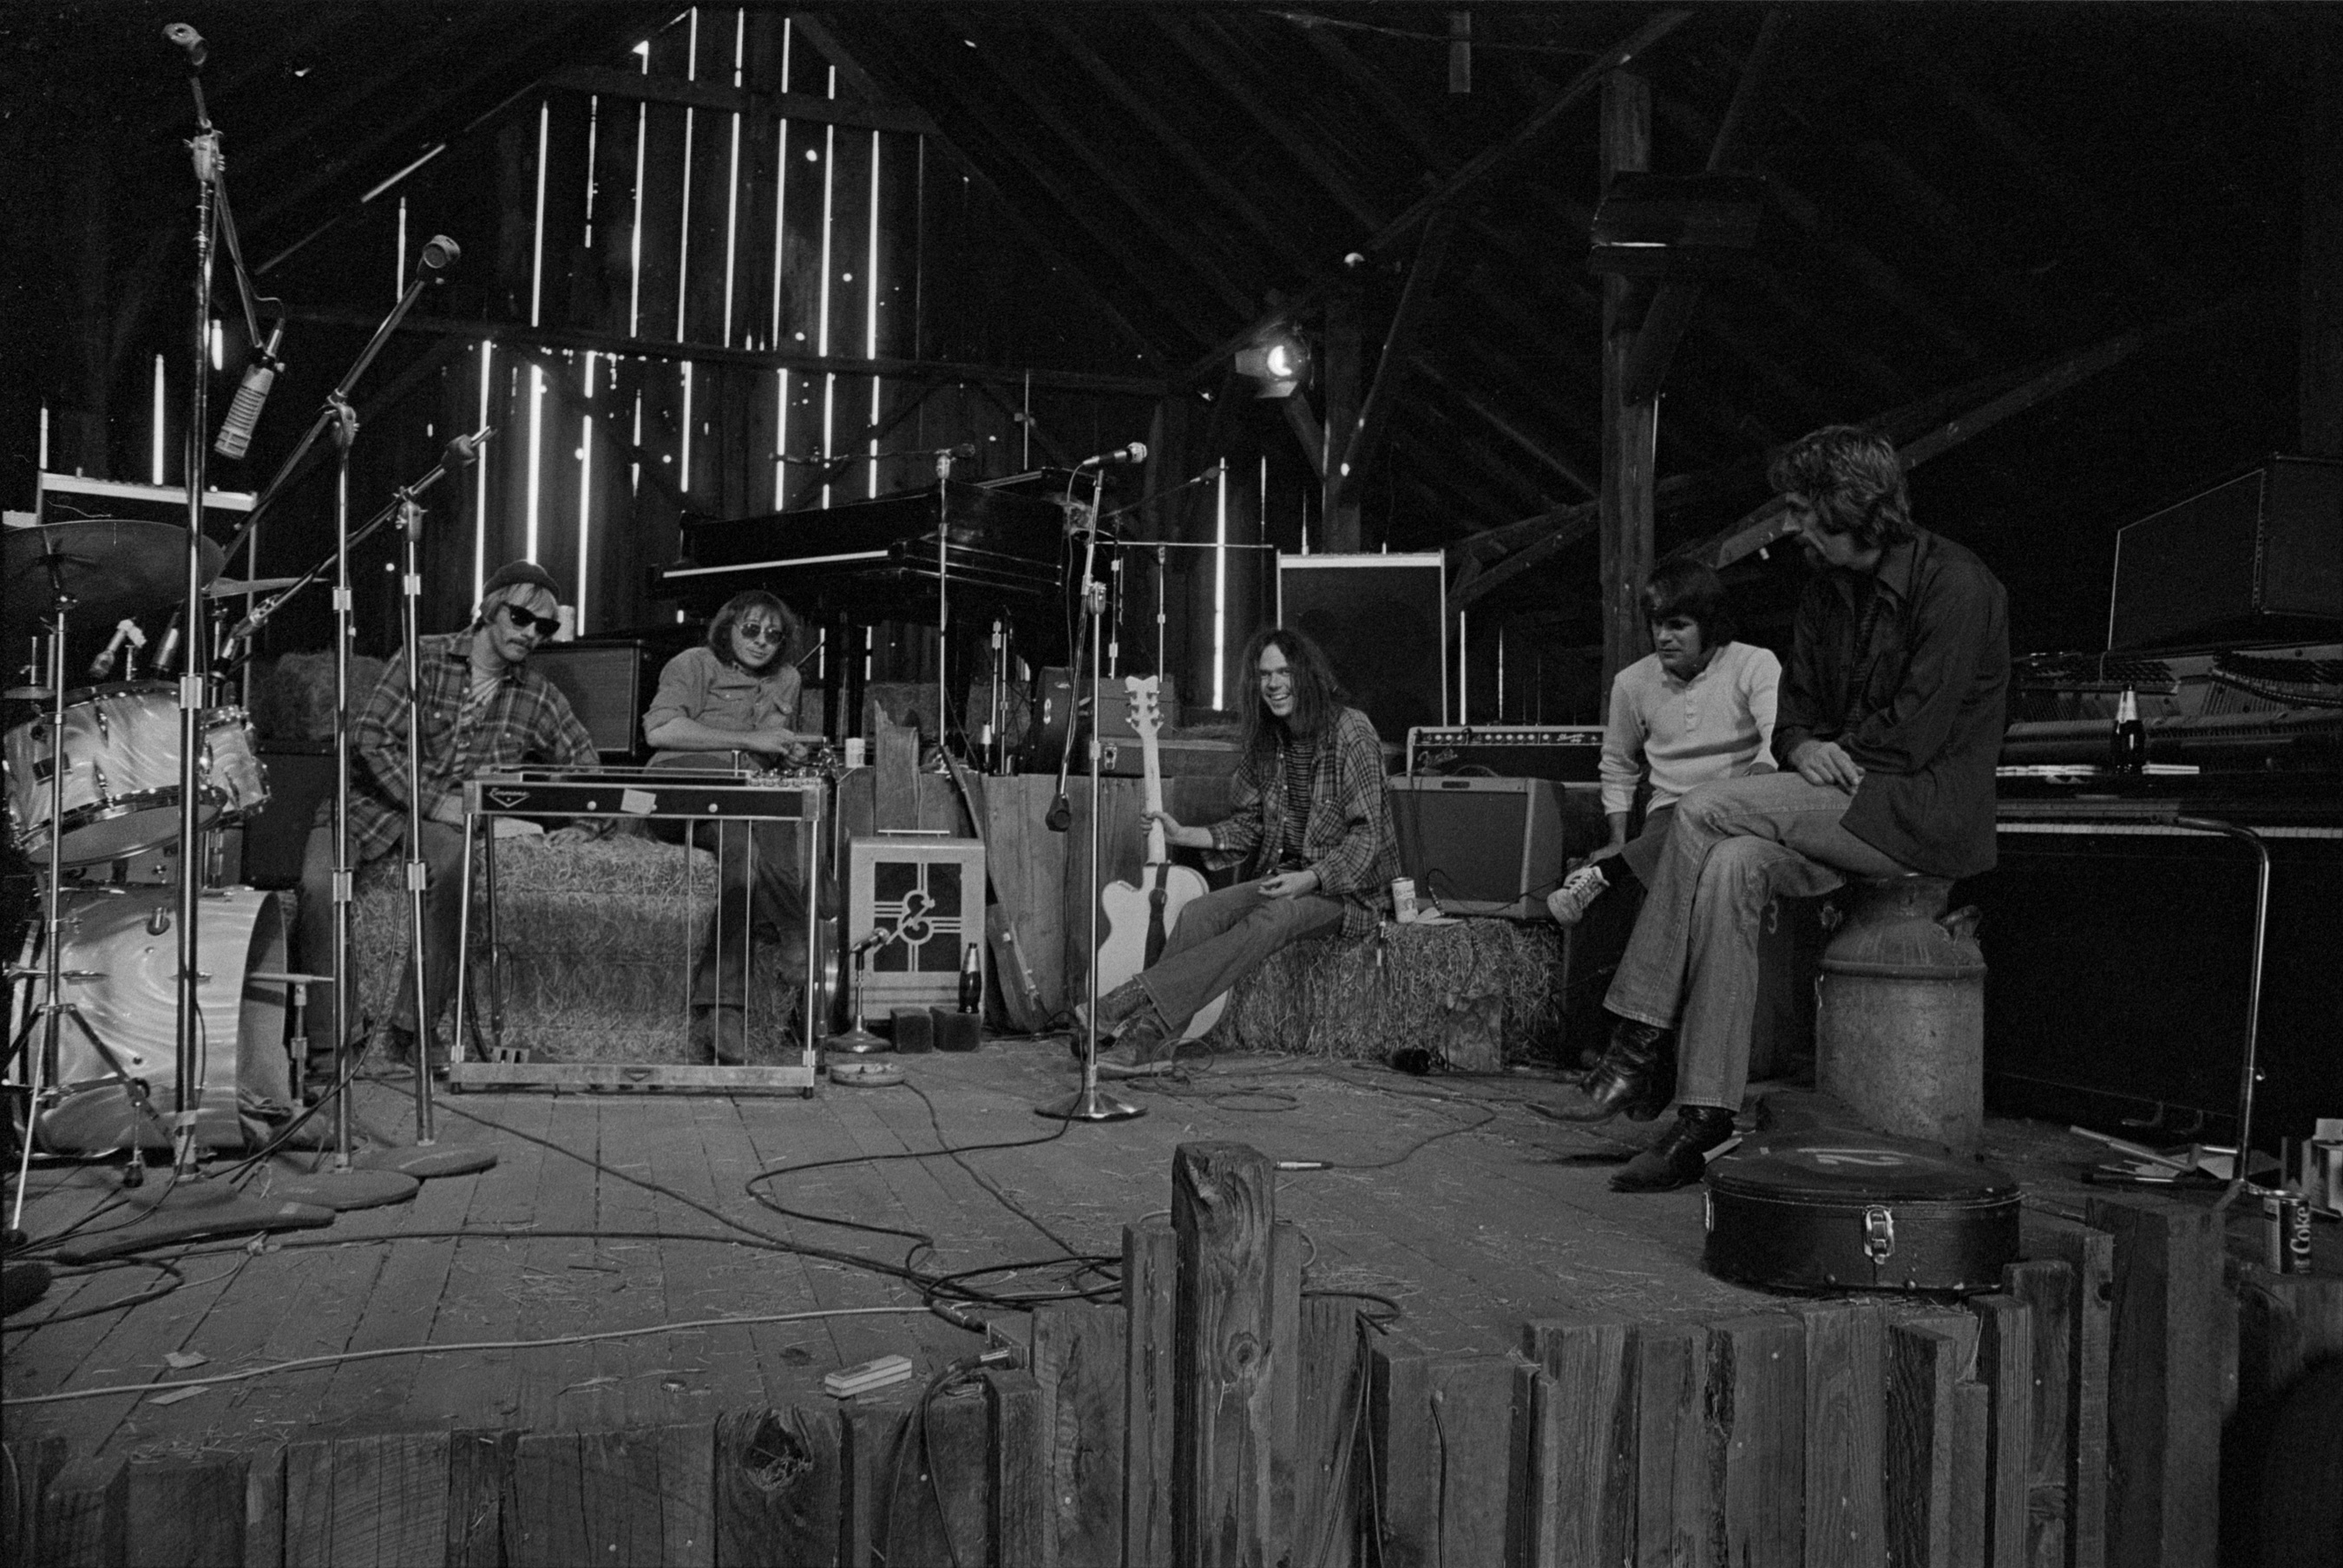 With the Stray Gators in the barn at Broken Arrow Ranch, 1971. Left to right: Tim Drummond, Jack Nitzsche, Neil Young, Kenny Buttrey, Ben Keith.